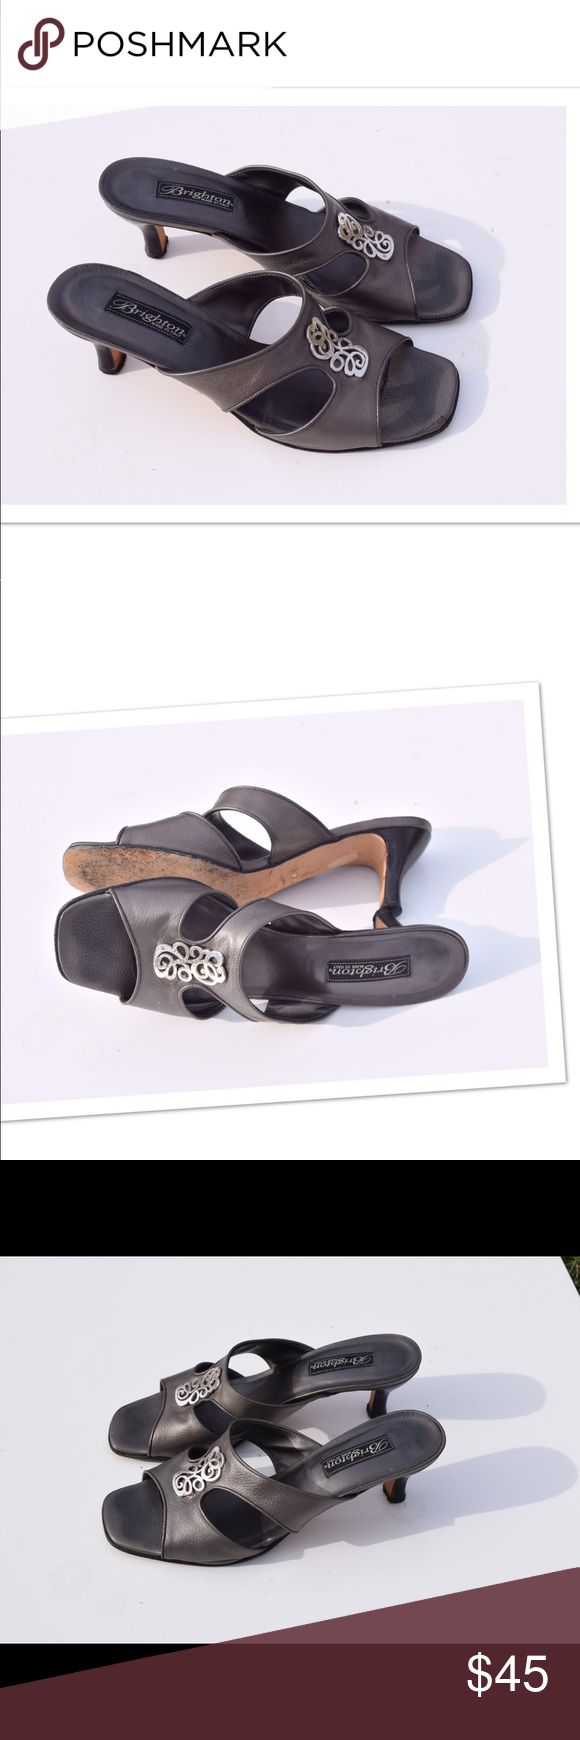 "Brighton Sandals Brighton ""Treson""slide sandals Made in Italy Leather upper. Gray color. Silver tone details Size 9 1/2. Heels 2 1/2"" Wear to soles (pic) In excellent condition Brighton Shoes Sandals"